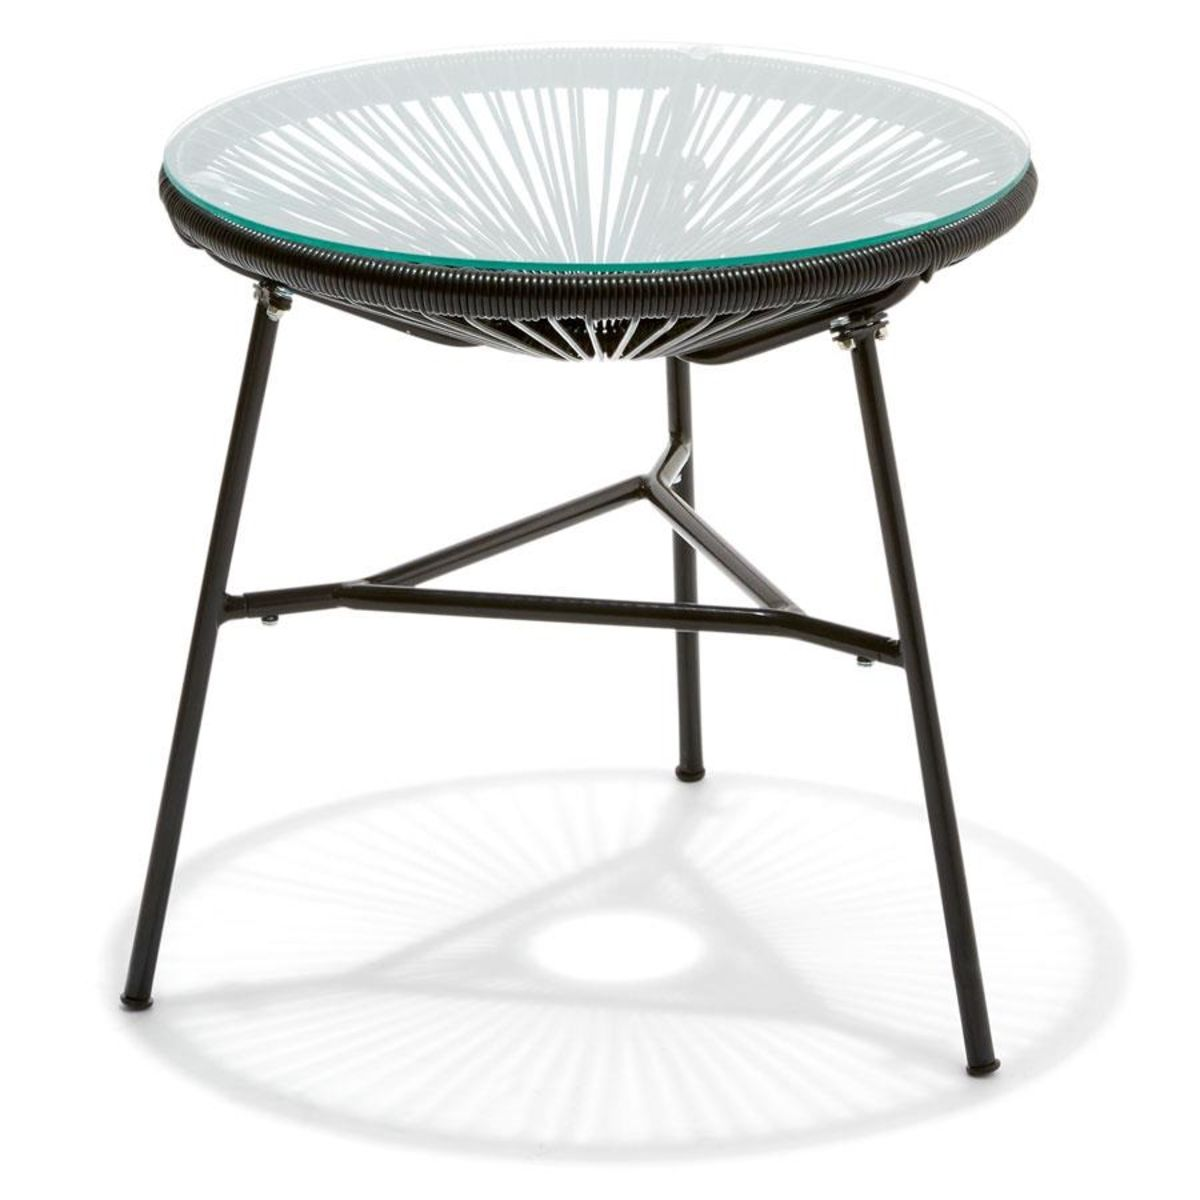 Kmart Kitchen Table | Acapulco Replica Side Table Black Kmart 阳台 户外balcony